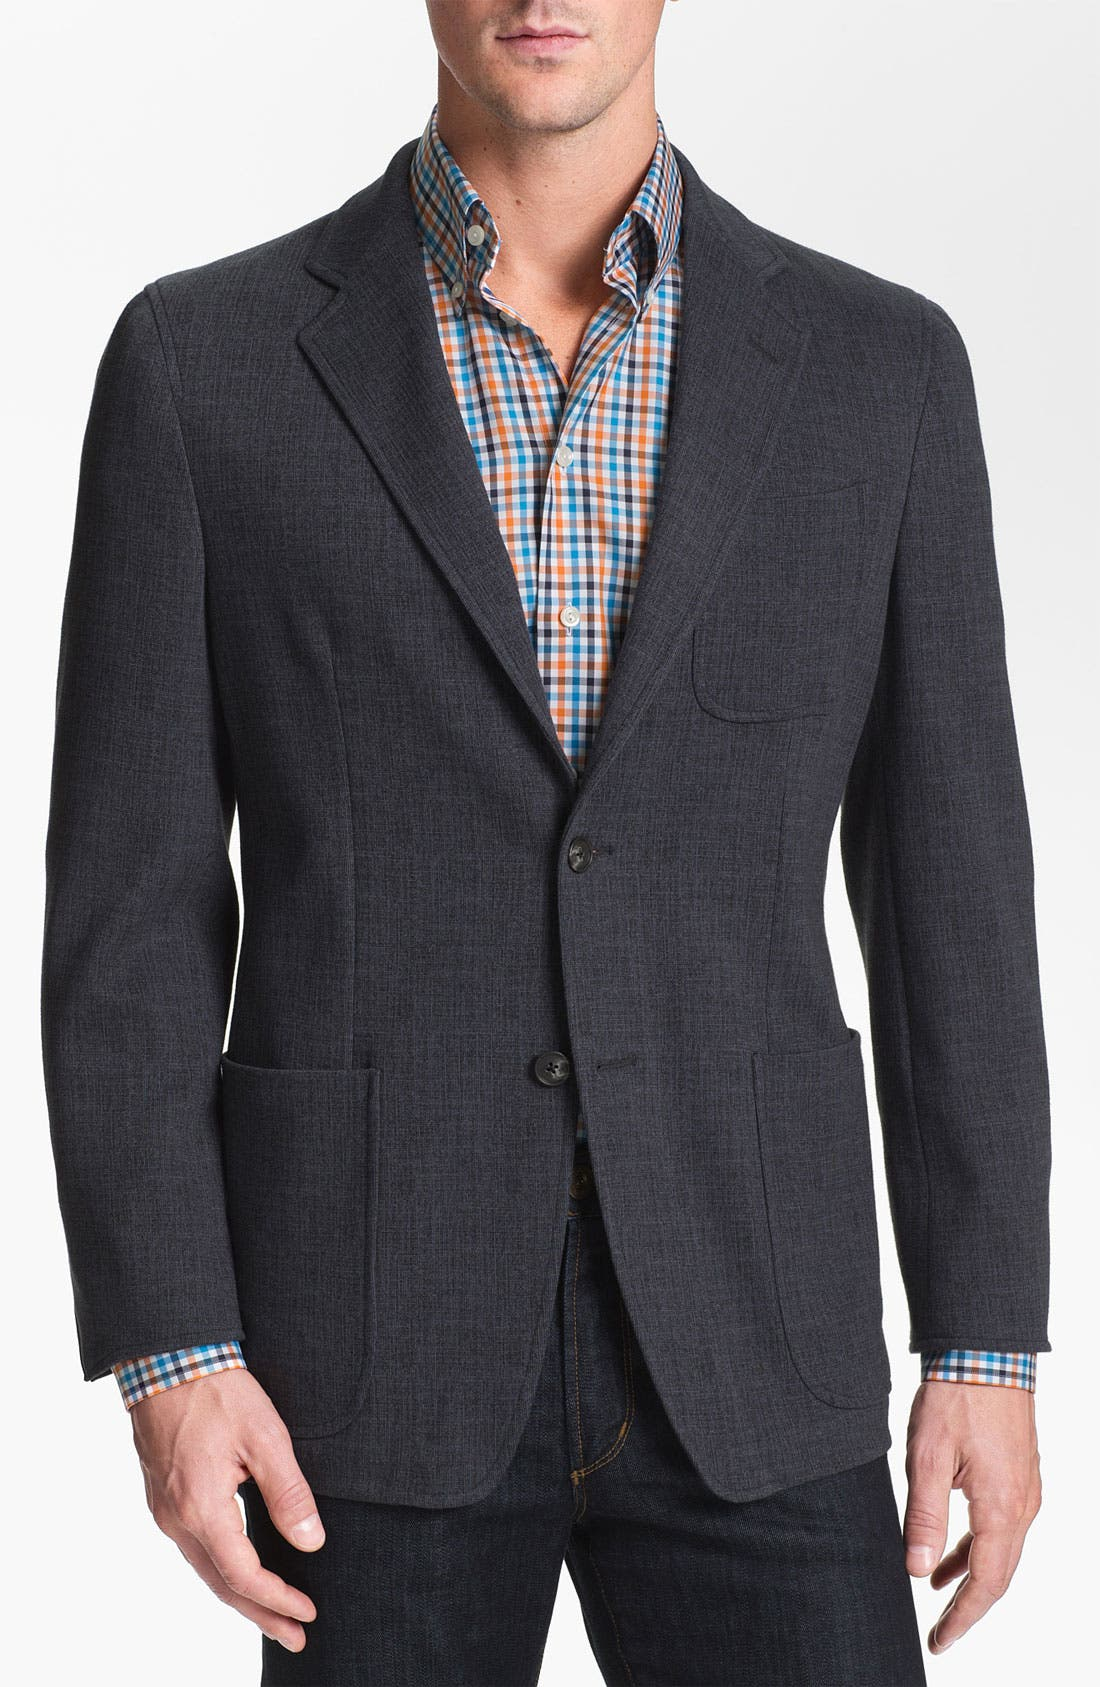 Main Image - Joseph Abboud Cotton Blend Blazer